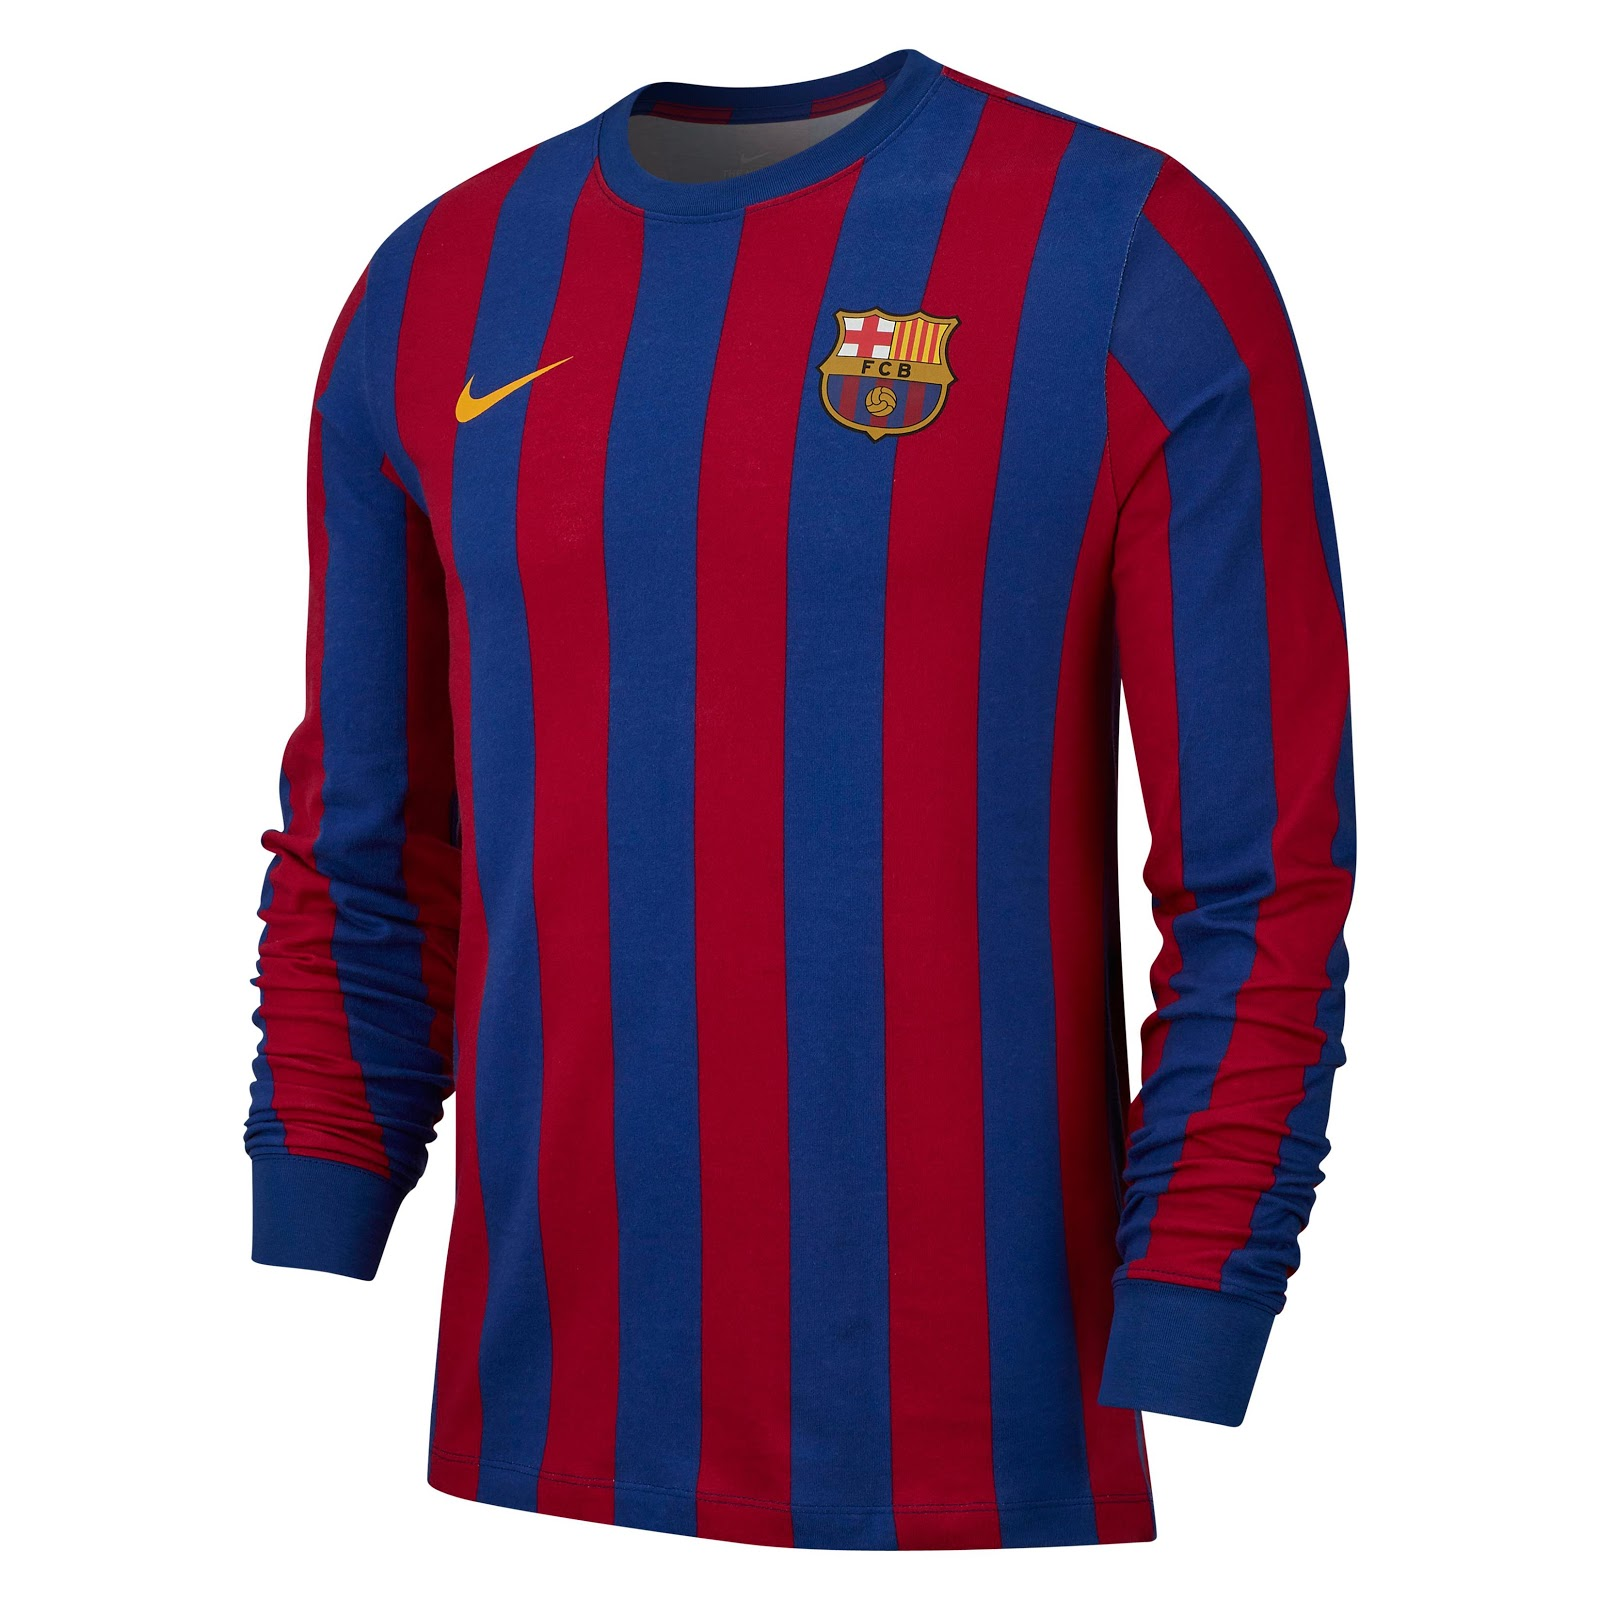 77a5b9535d8f Classy Nike FC Barcelona 2019 LS Retro Shirt Released - Footy ...